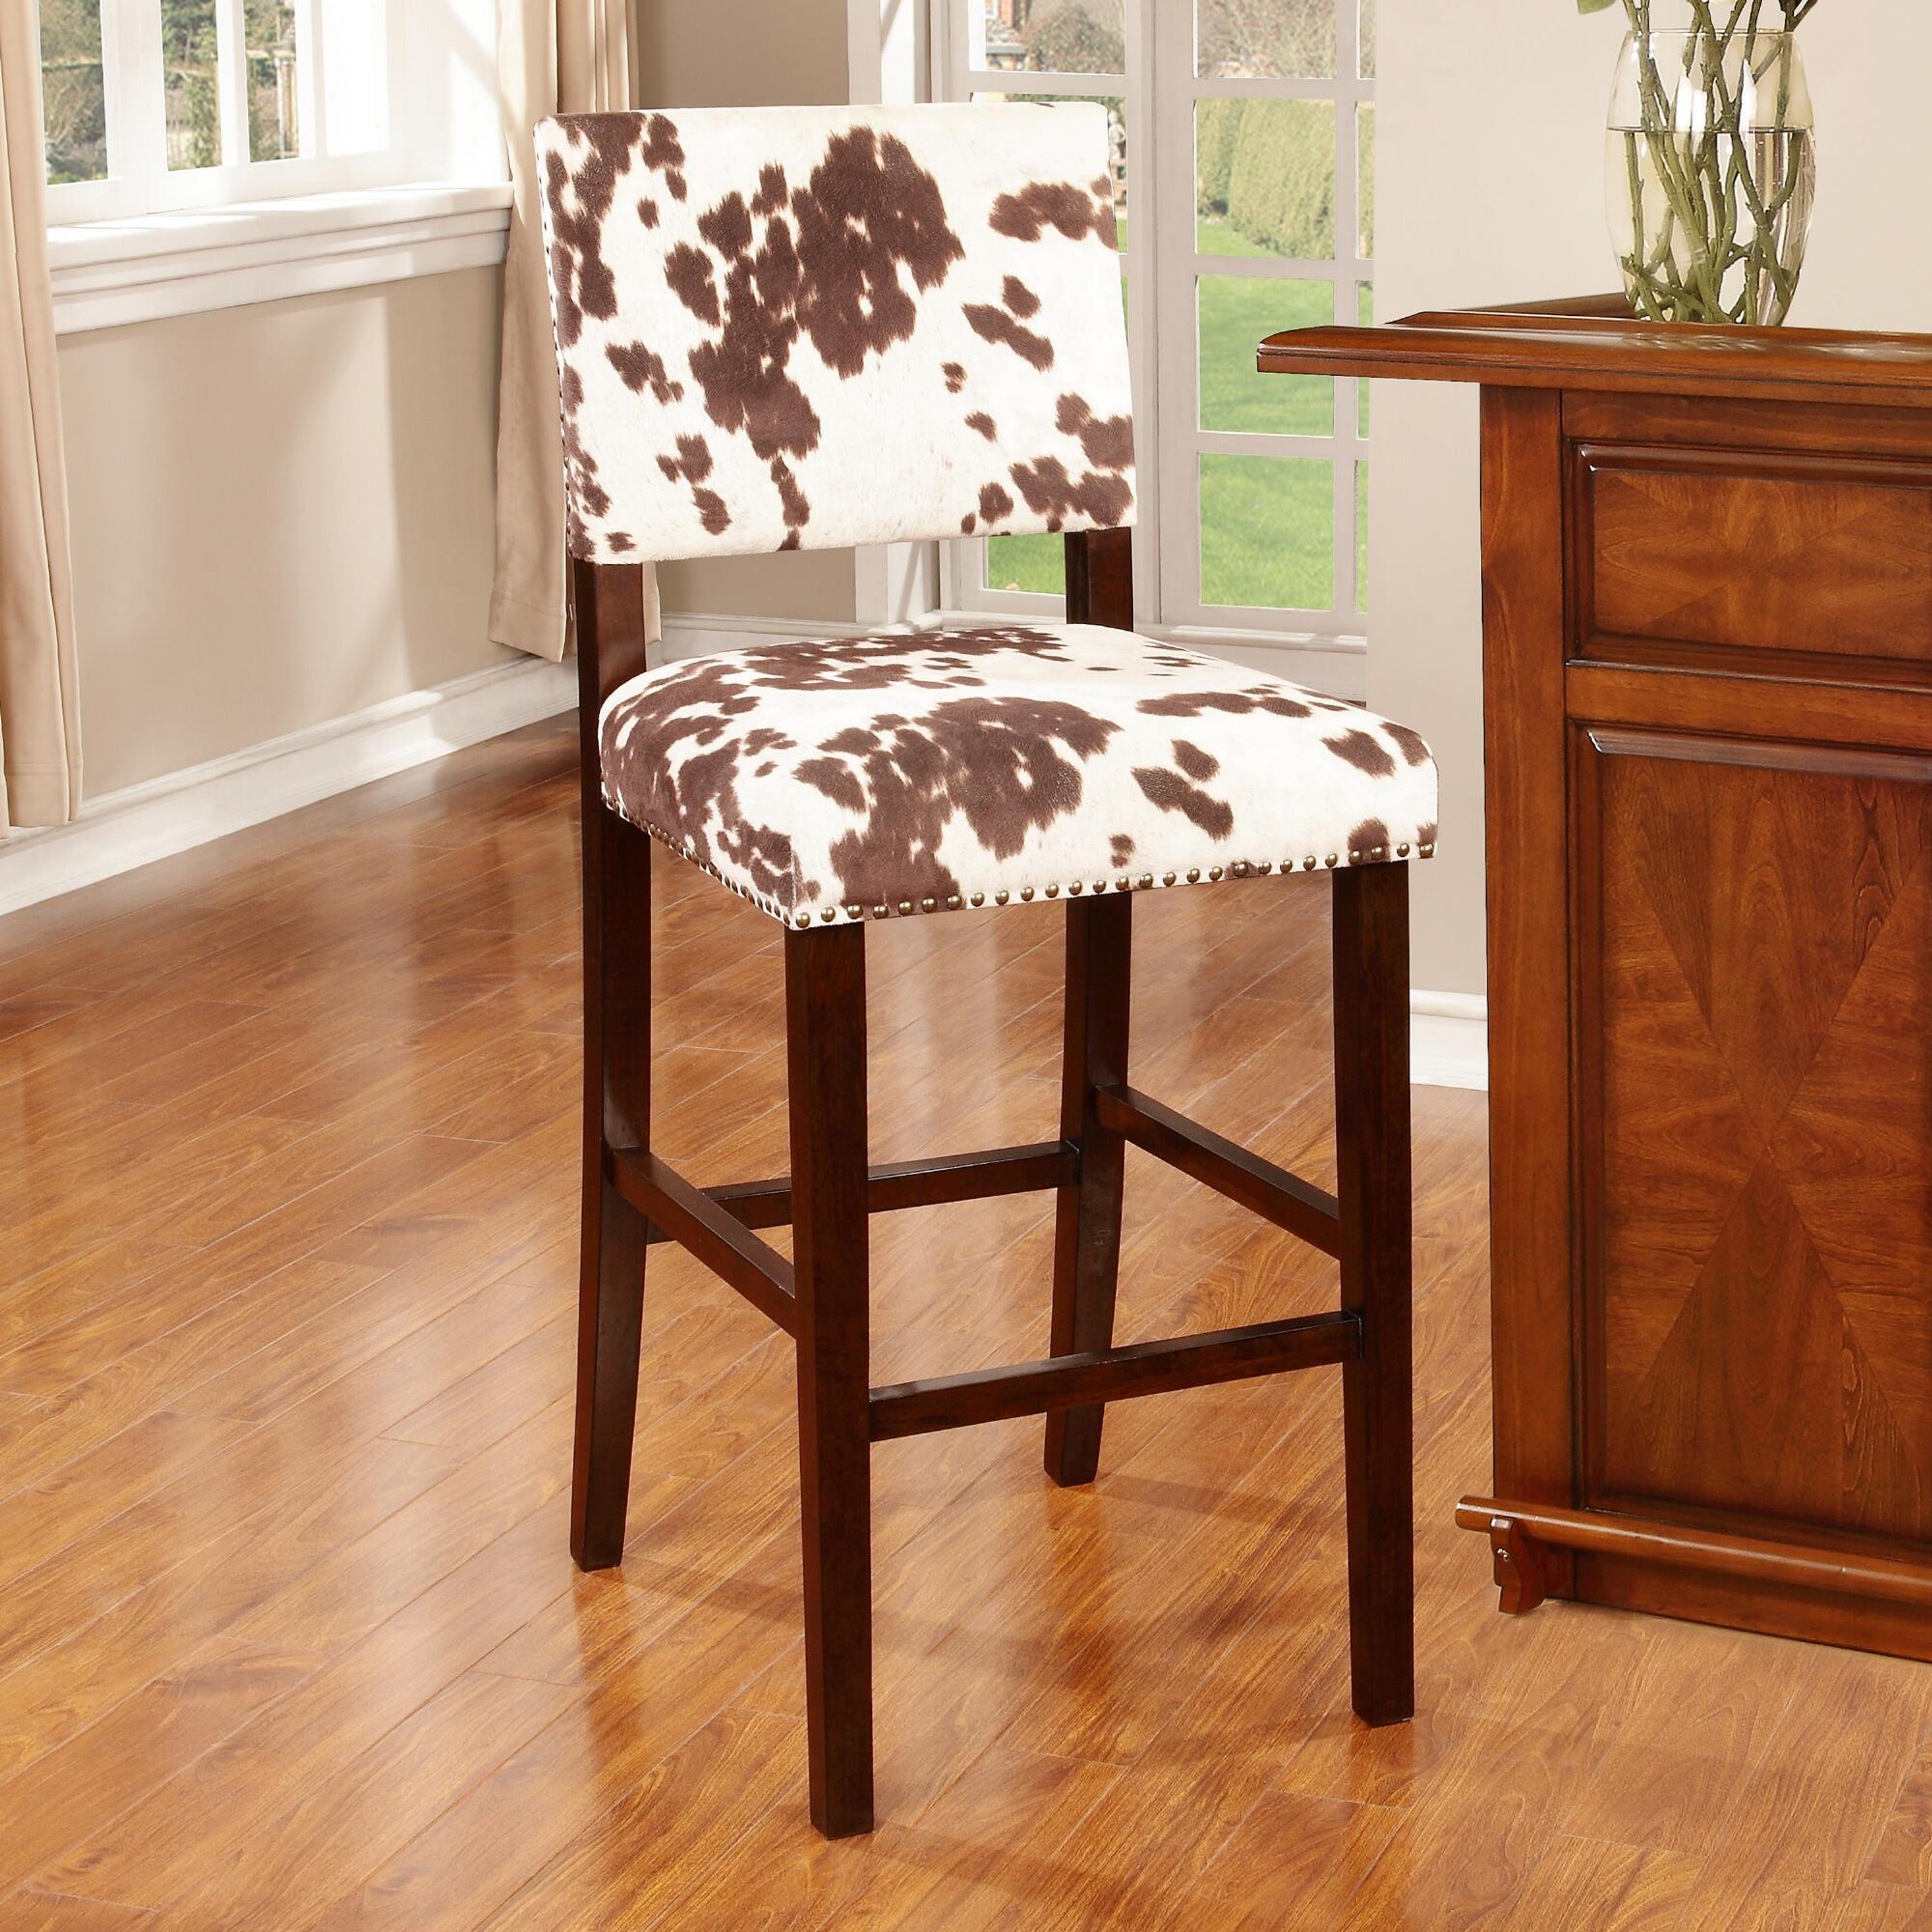 Brown Cow-Print Addison Bar Stool | World Market